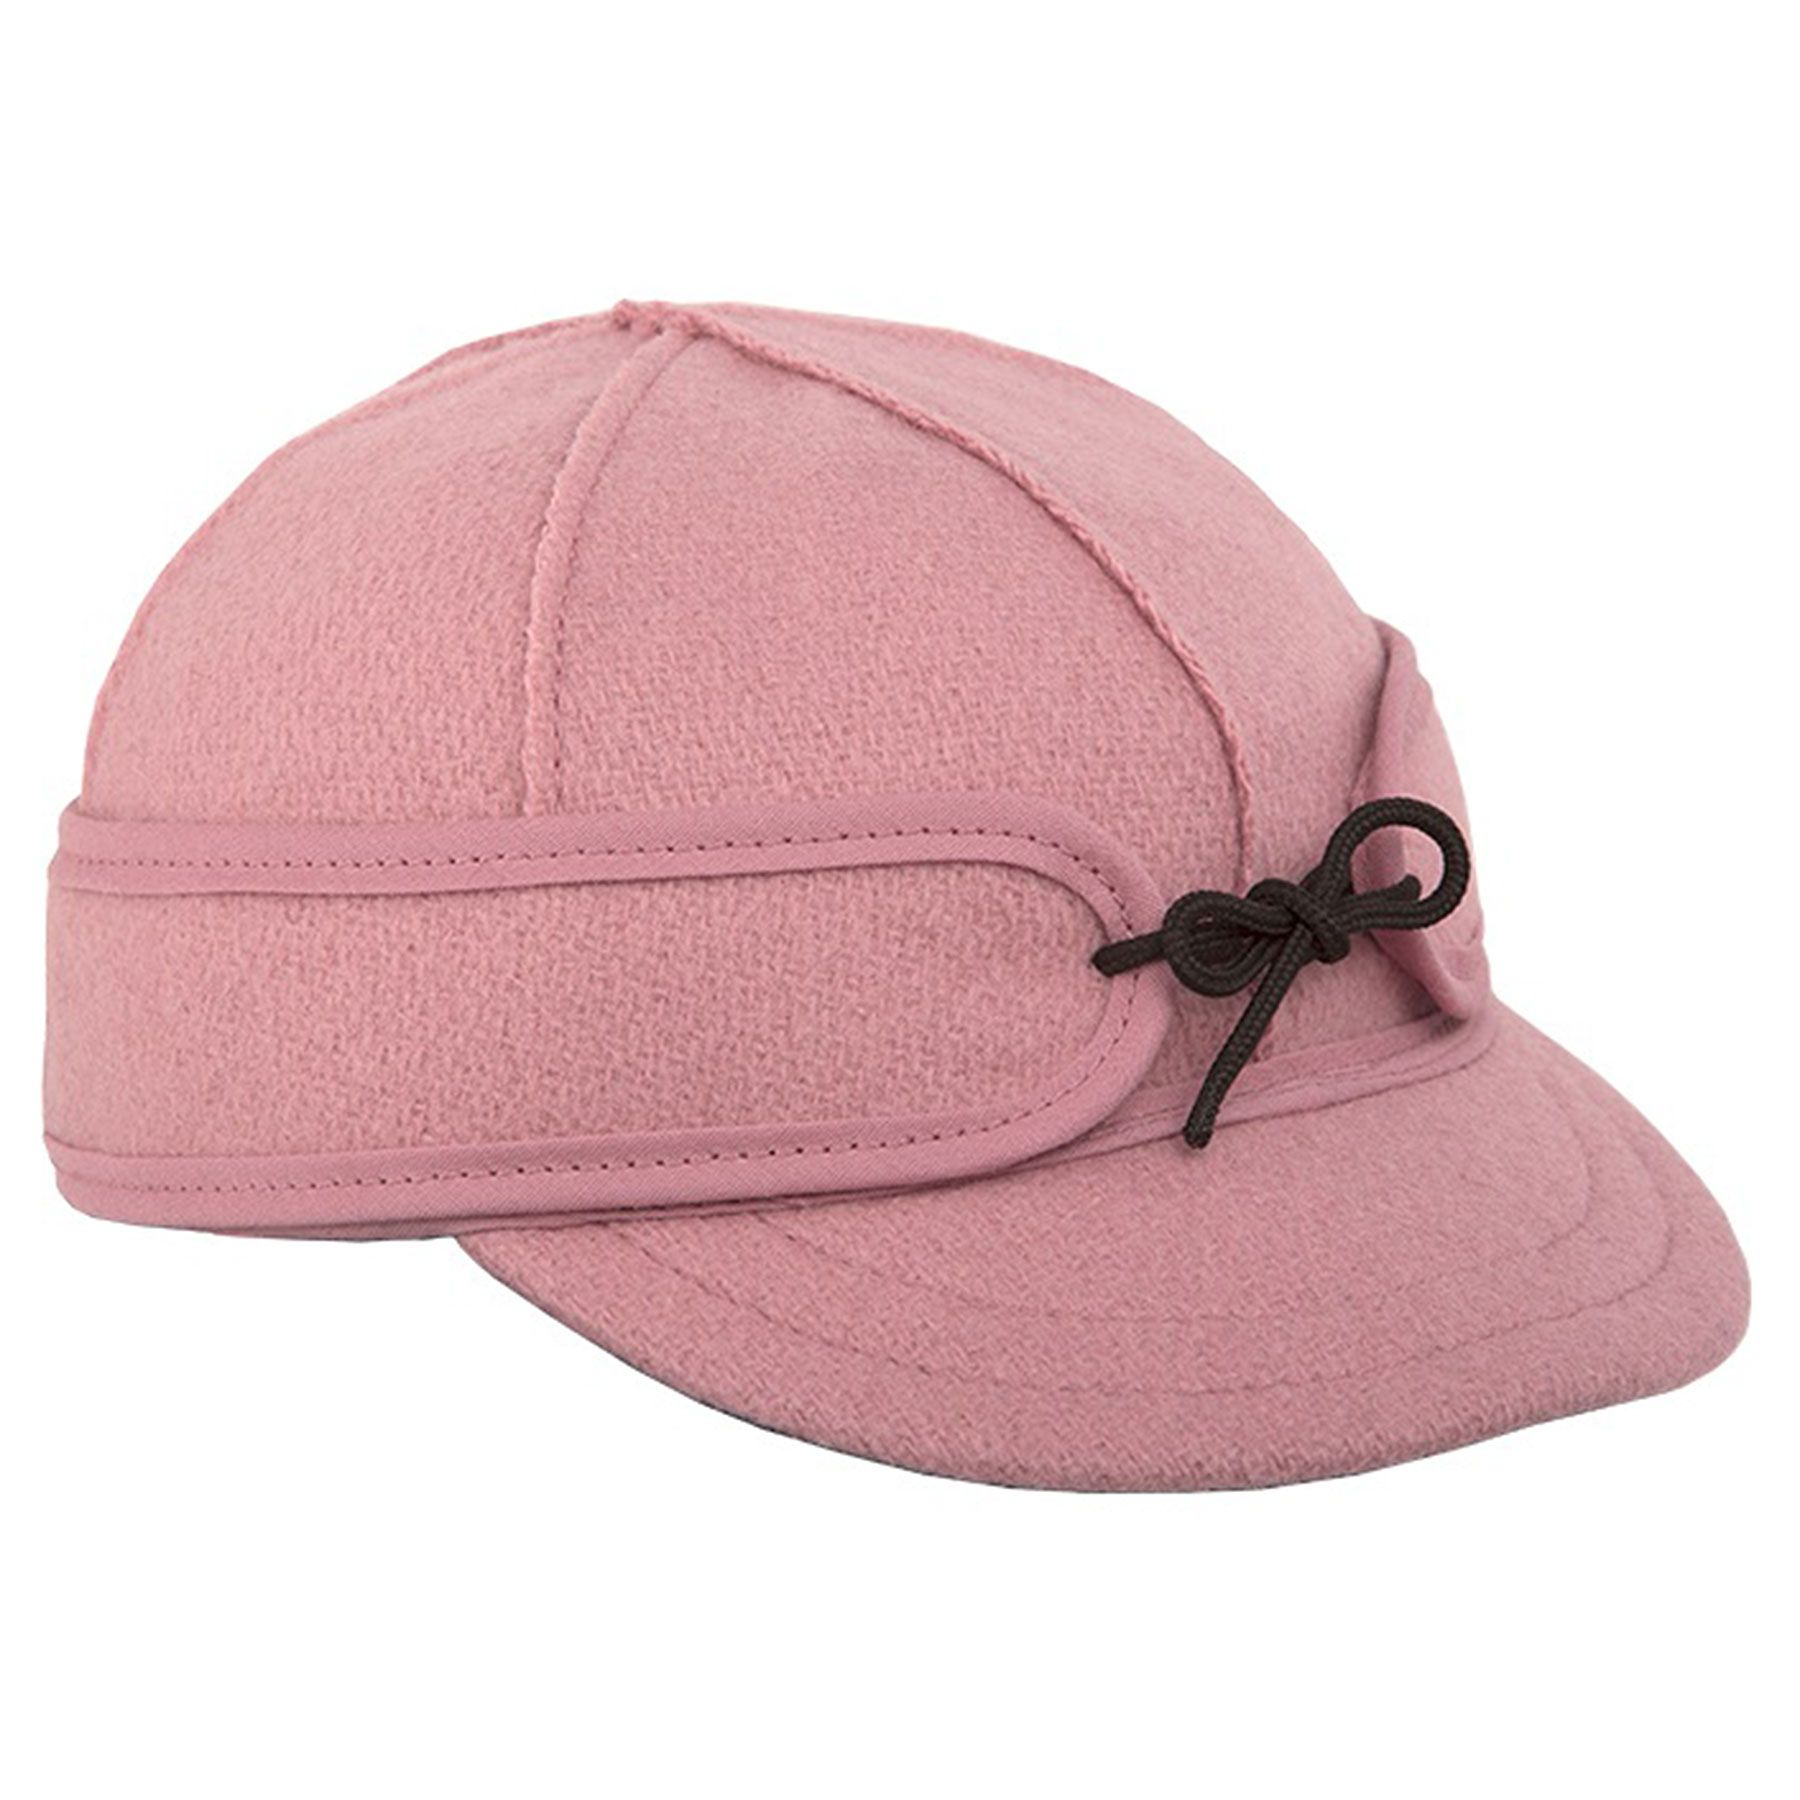 Lil  Stormy Kromer Cap For Kids  madeinUSA - 15% off hats.com with code  USAlove  19f6ad30b17